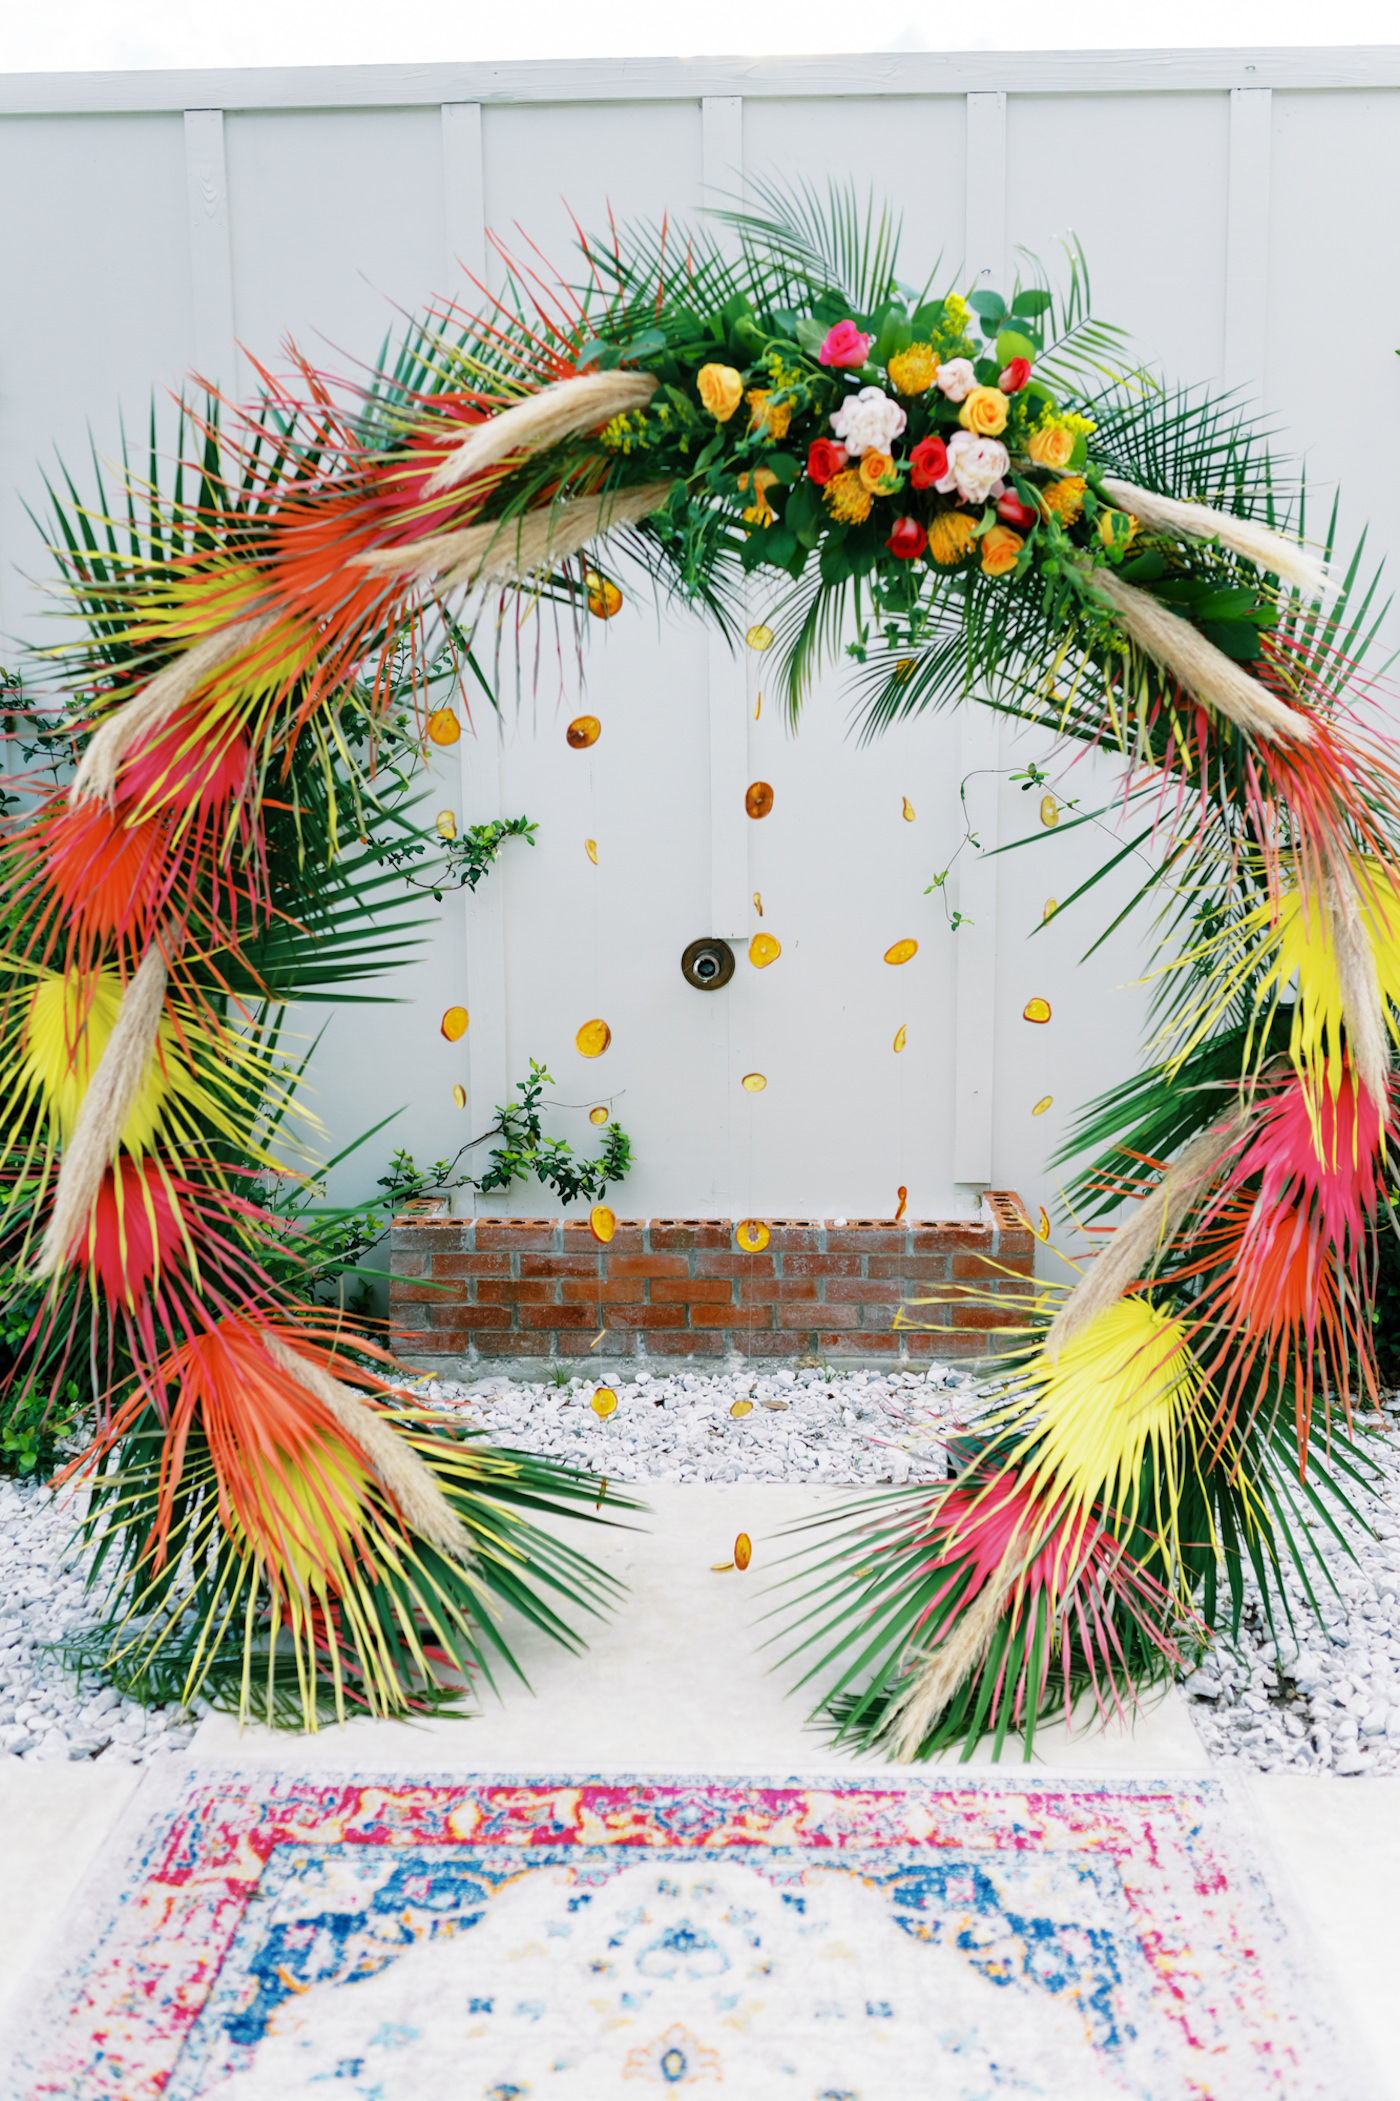 Tropical Florida Citrus Wedding Inspiration | Orange and Yellow Painted Palm Frond Leaf Round Moon Arch Ceremony Backdrop with Pampas Grass and Hanging Orange Slices